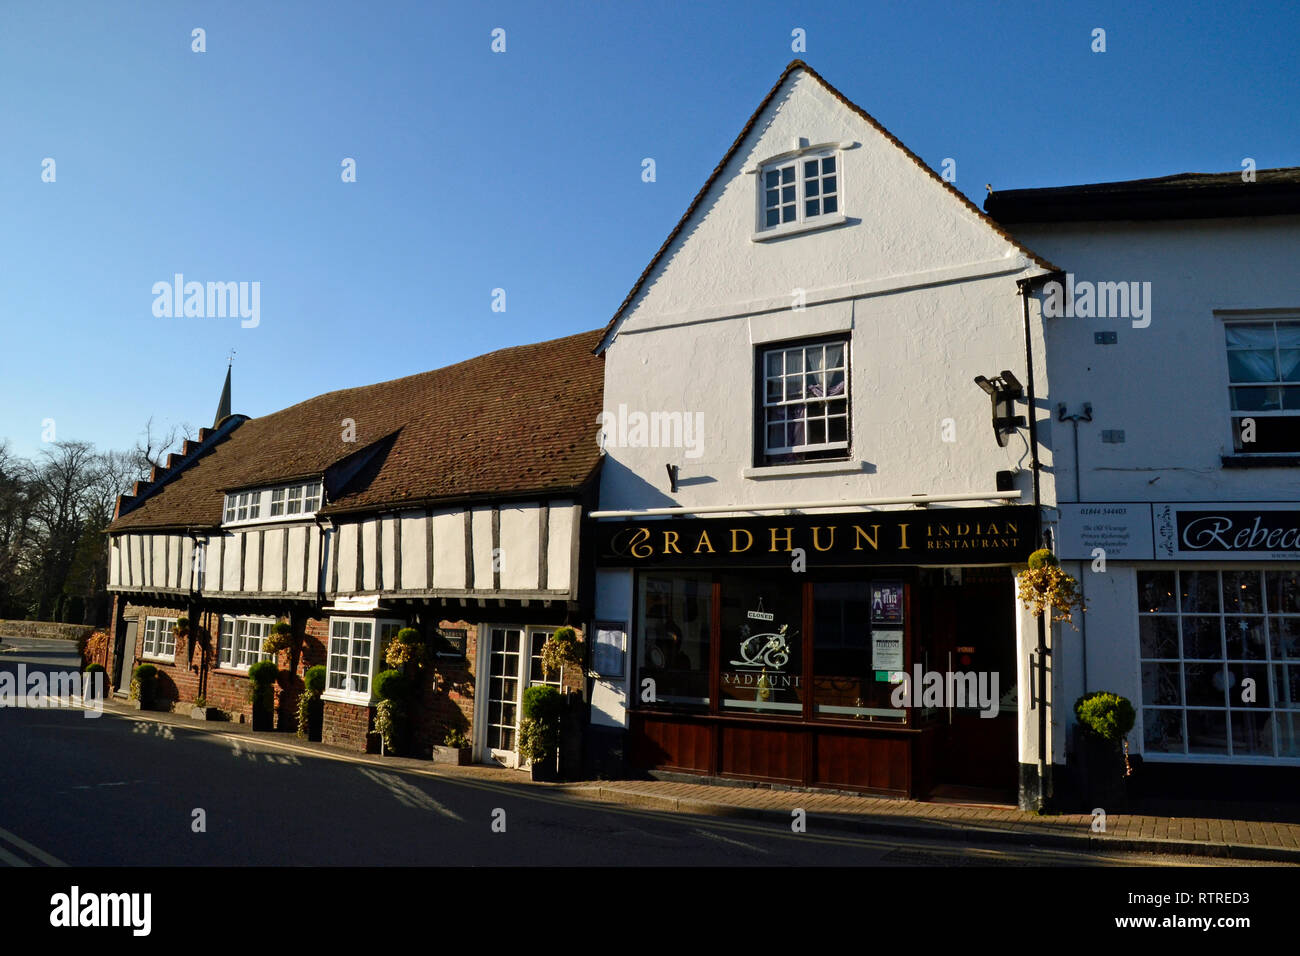 Radhuni Indian Restaurant, in The Old Library, Church Street, Princes Risborough, Buckinghamshire, UK - Stock Image